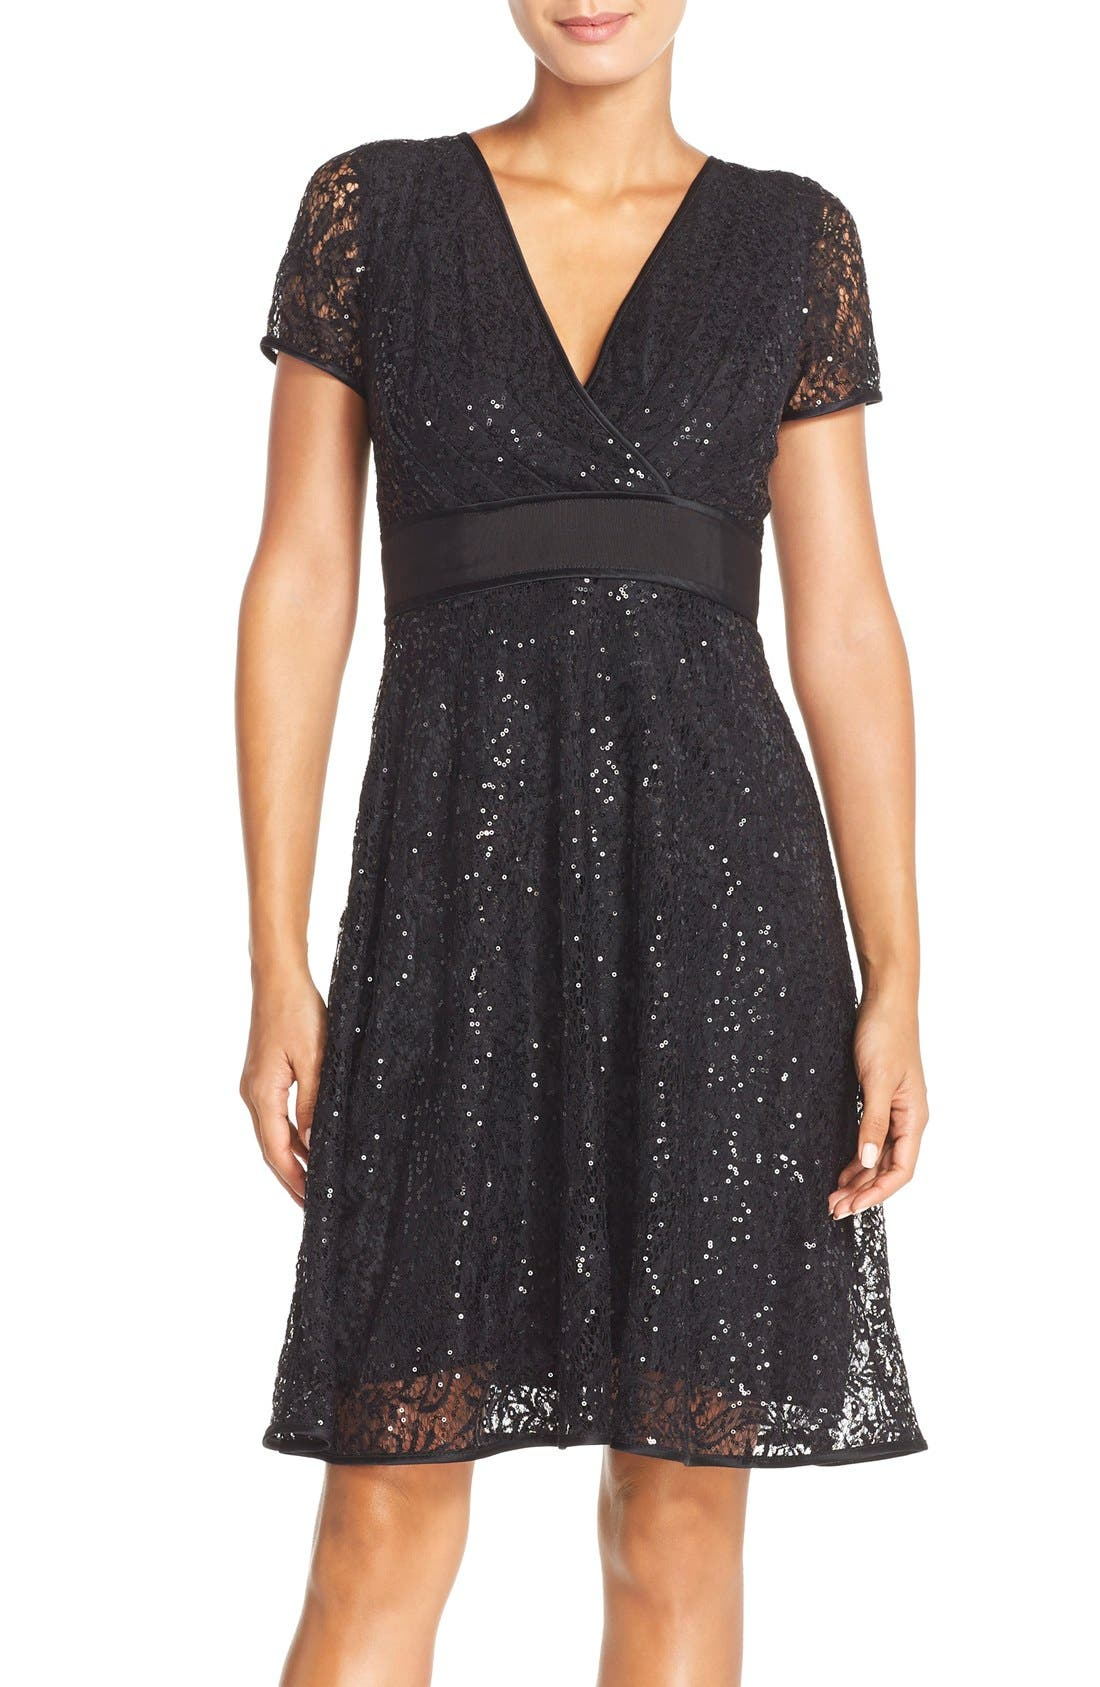 Alternate Image 1 Selected - Nue by Shani Sequin Lace Fit & Flare Dress